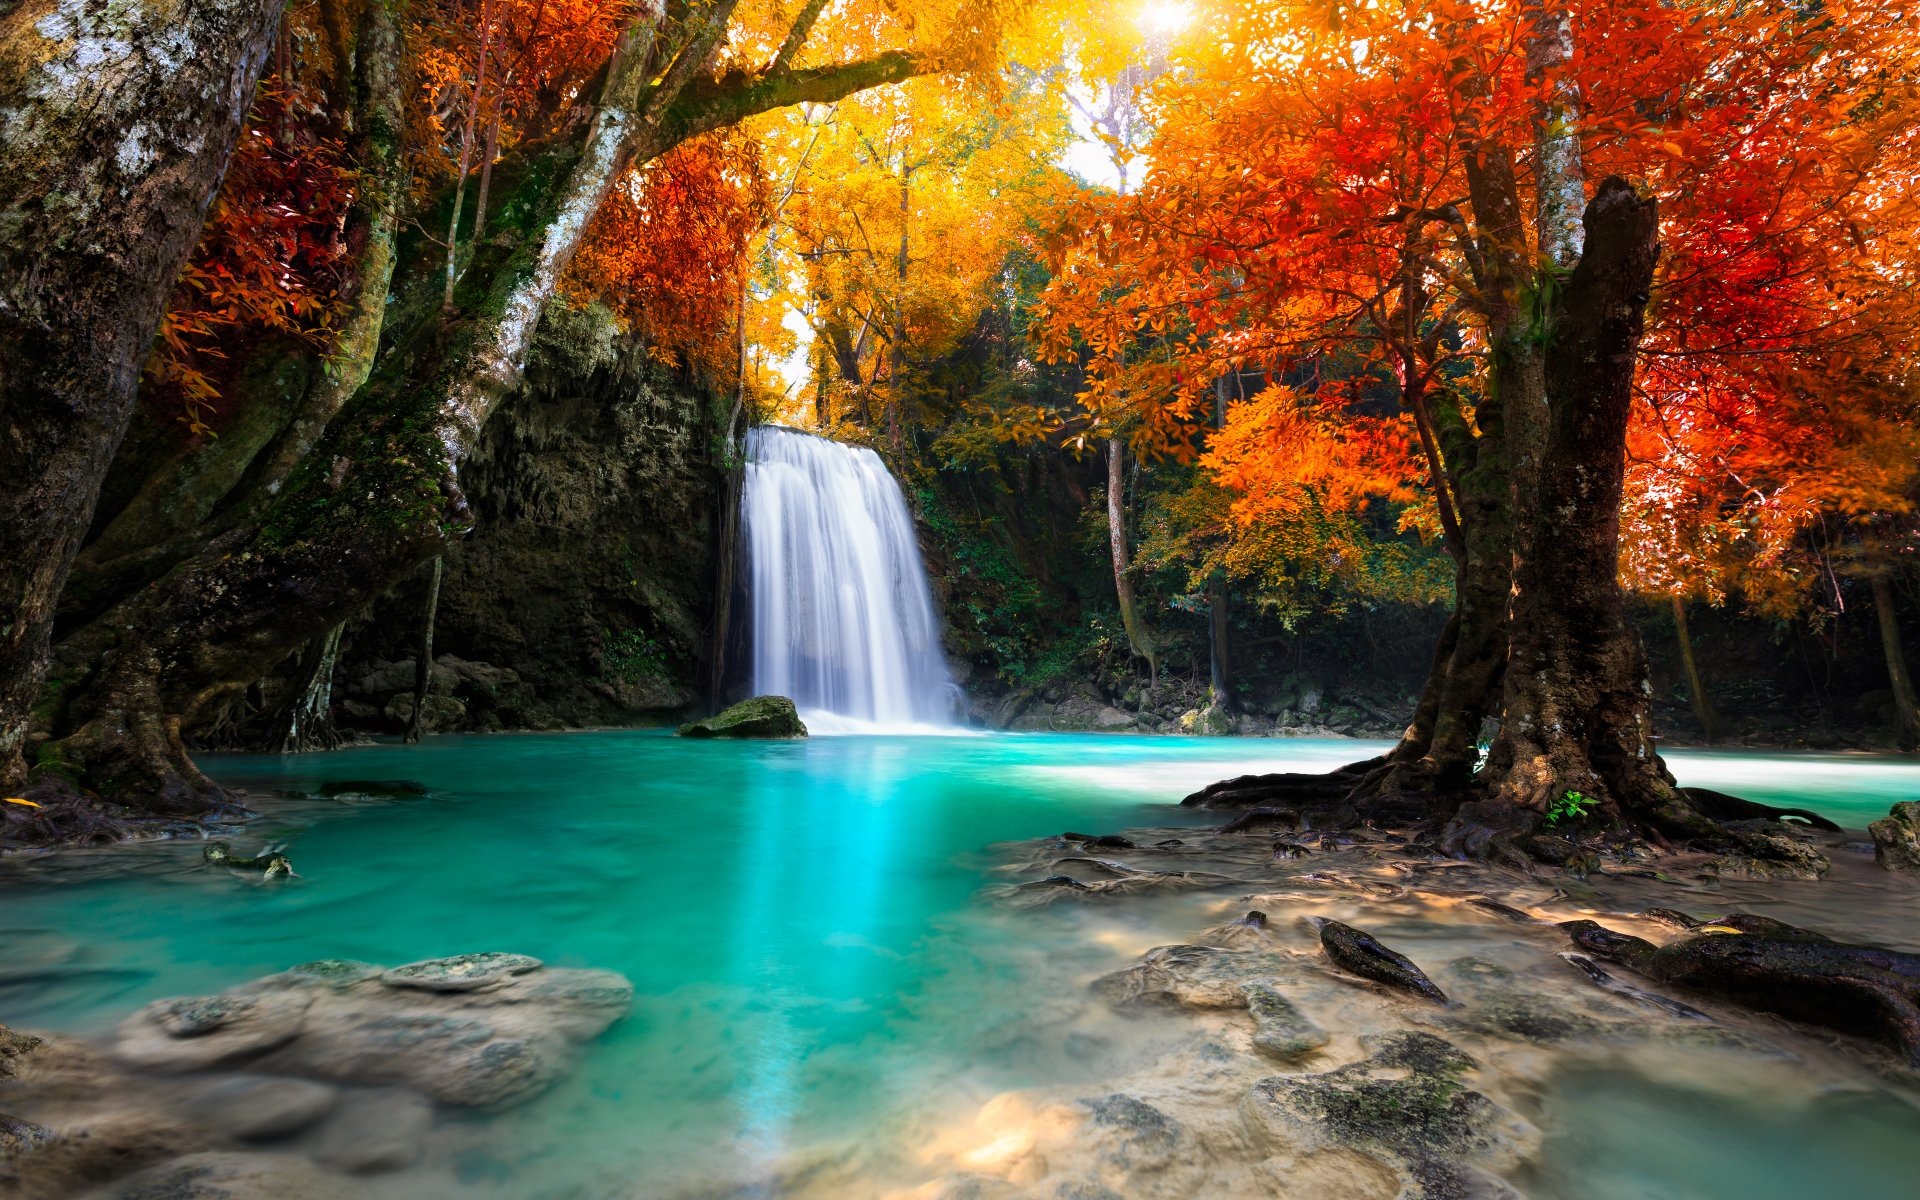 Waterfall Amongst Forest Trees in Autumn